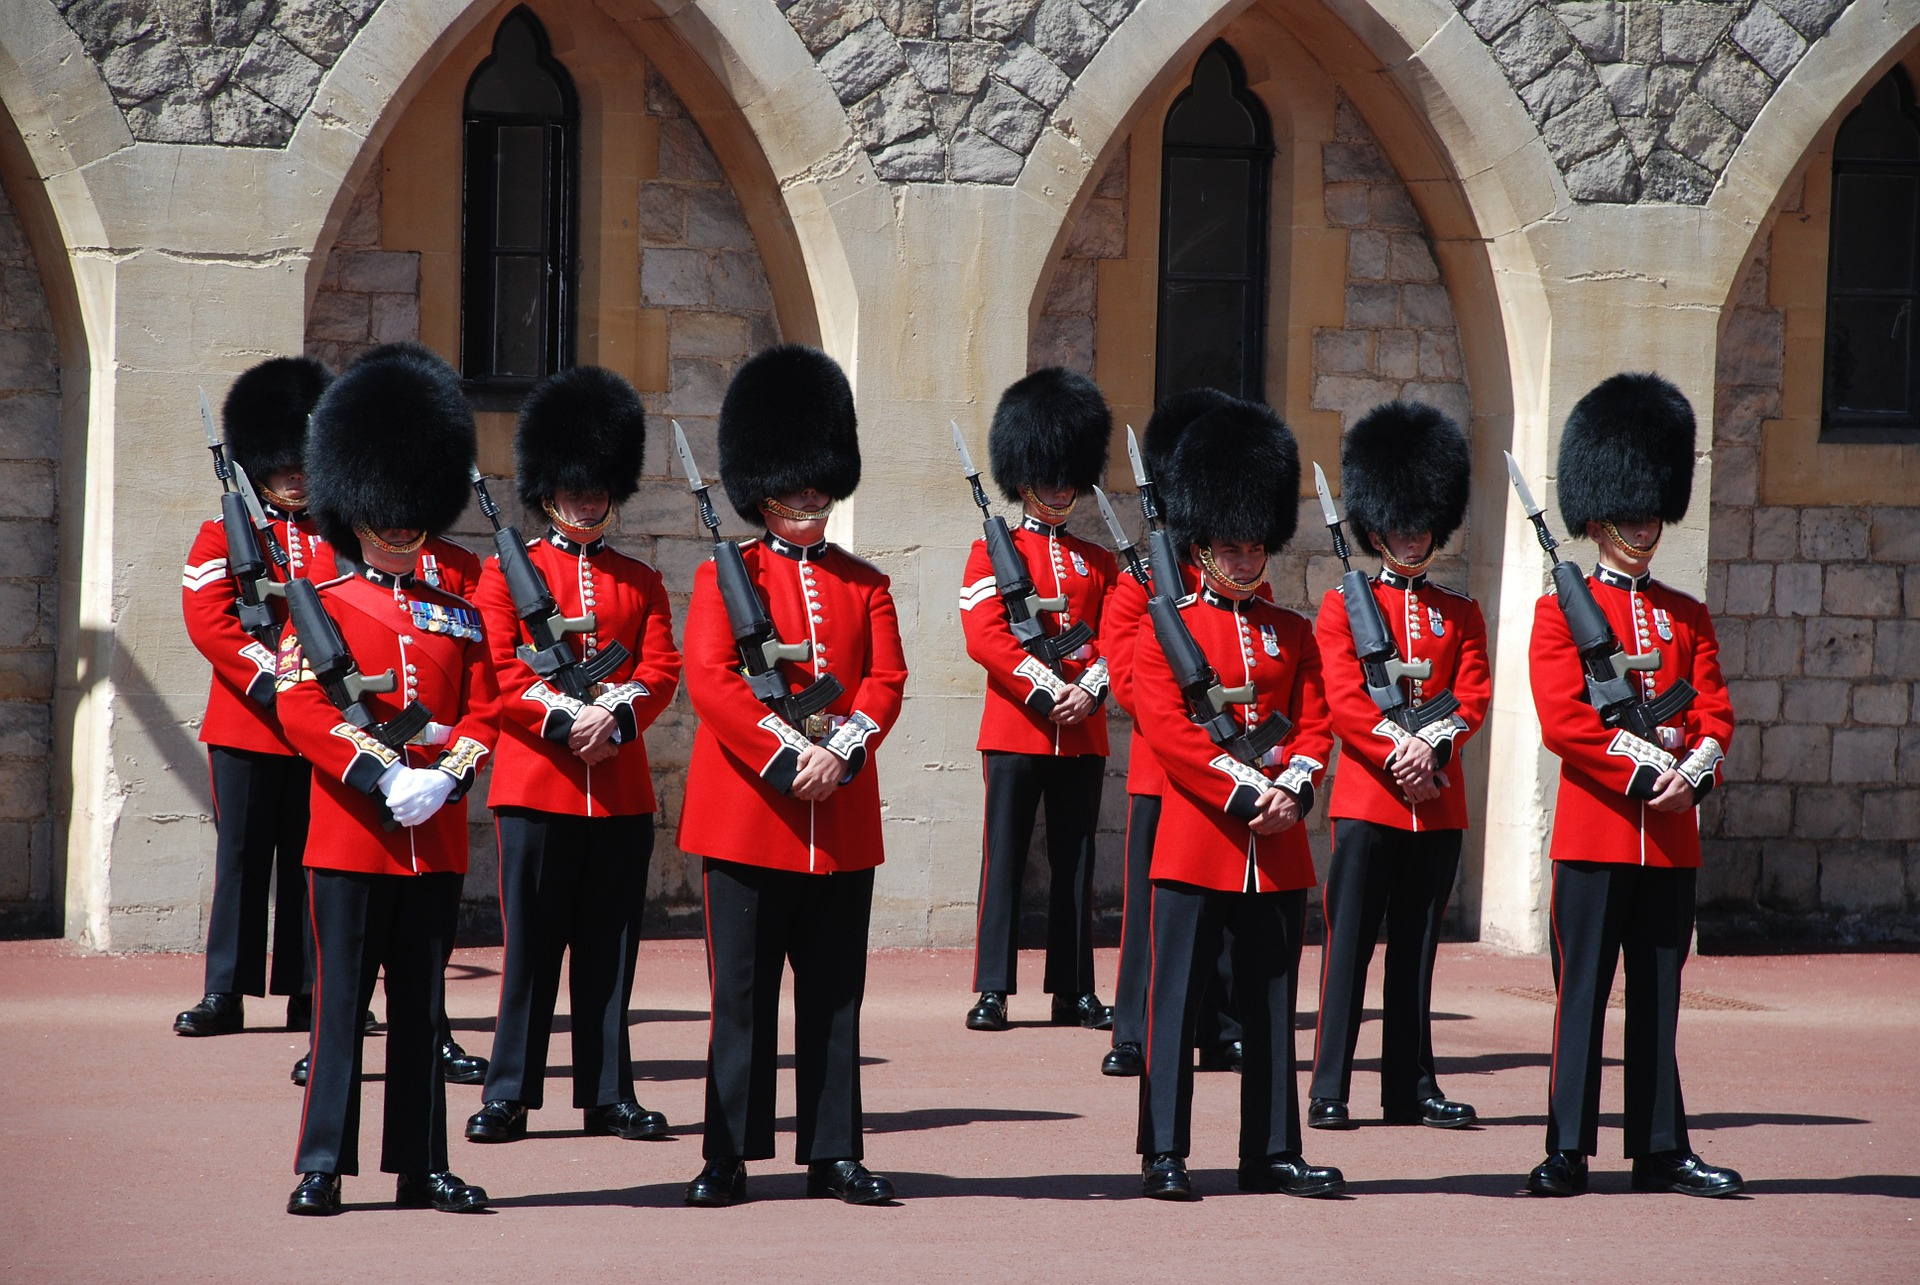 Changing the Guard at Windsor Castle.